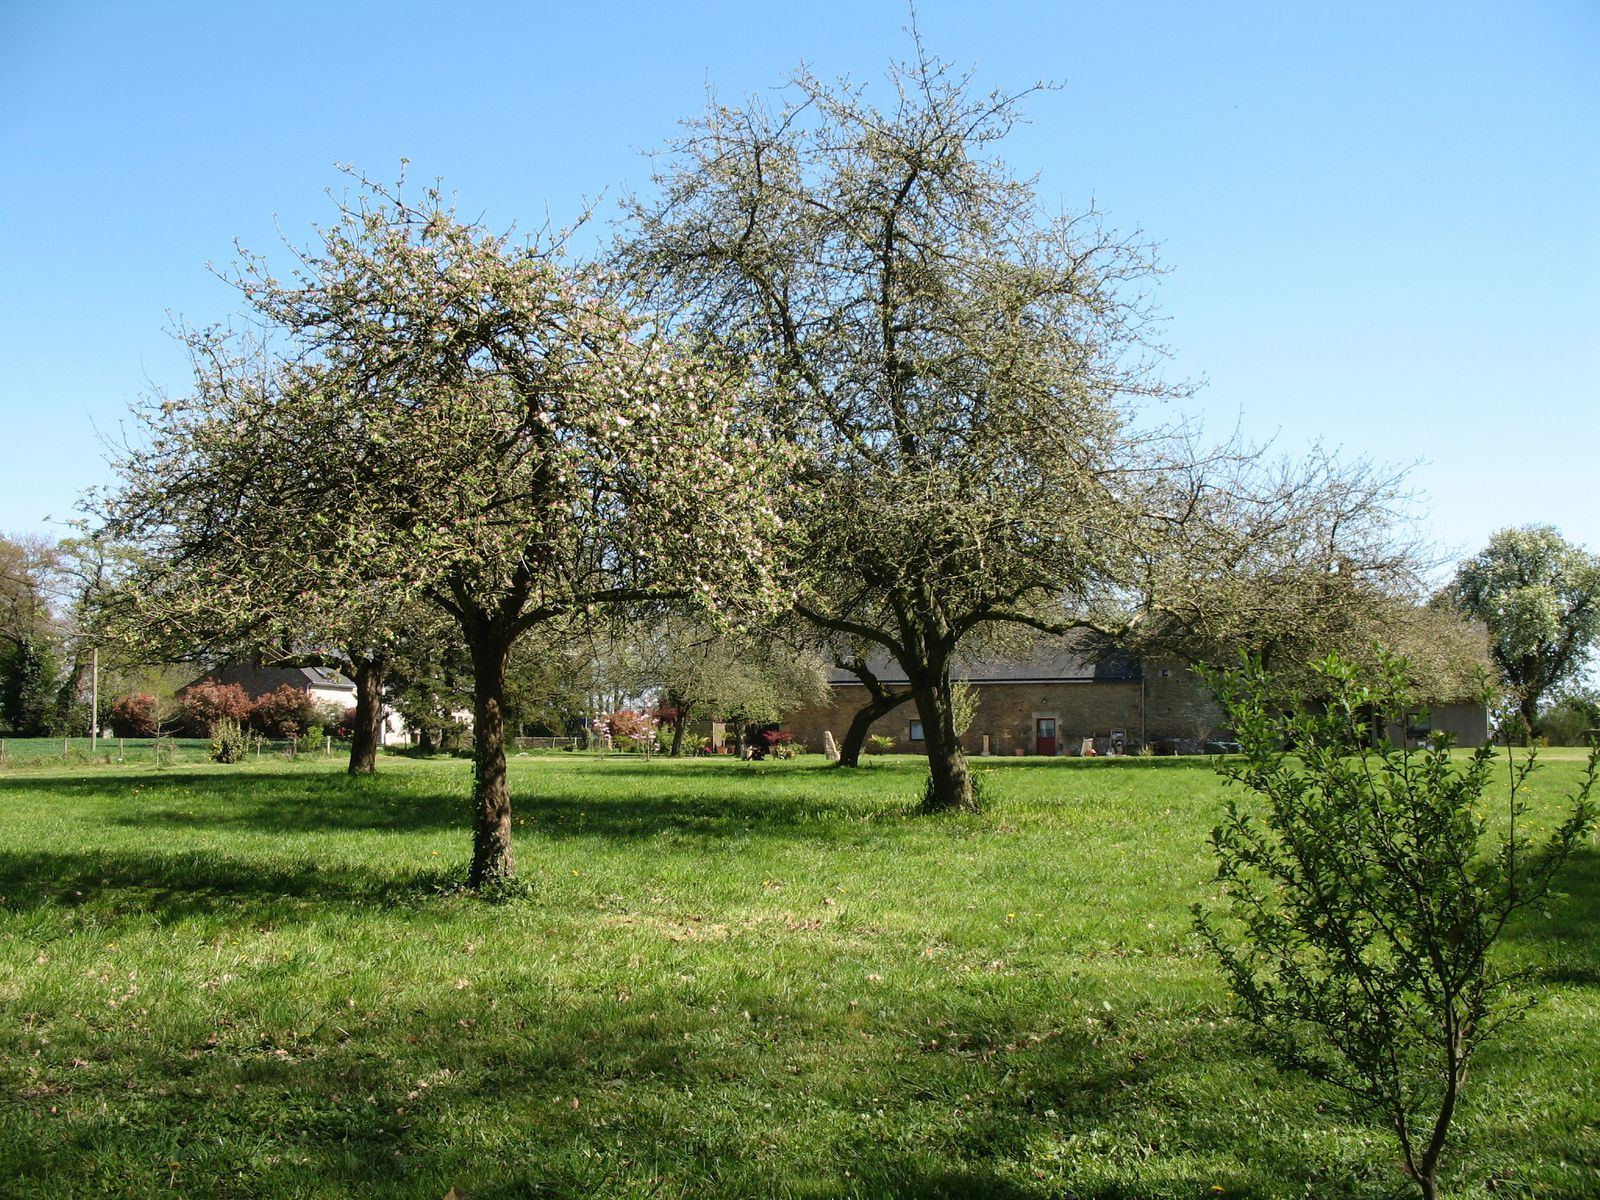 Maison vendre en bretagne 2015 best auto reviews for Maison container 50000